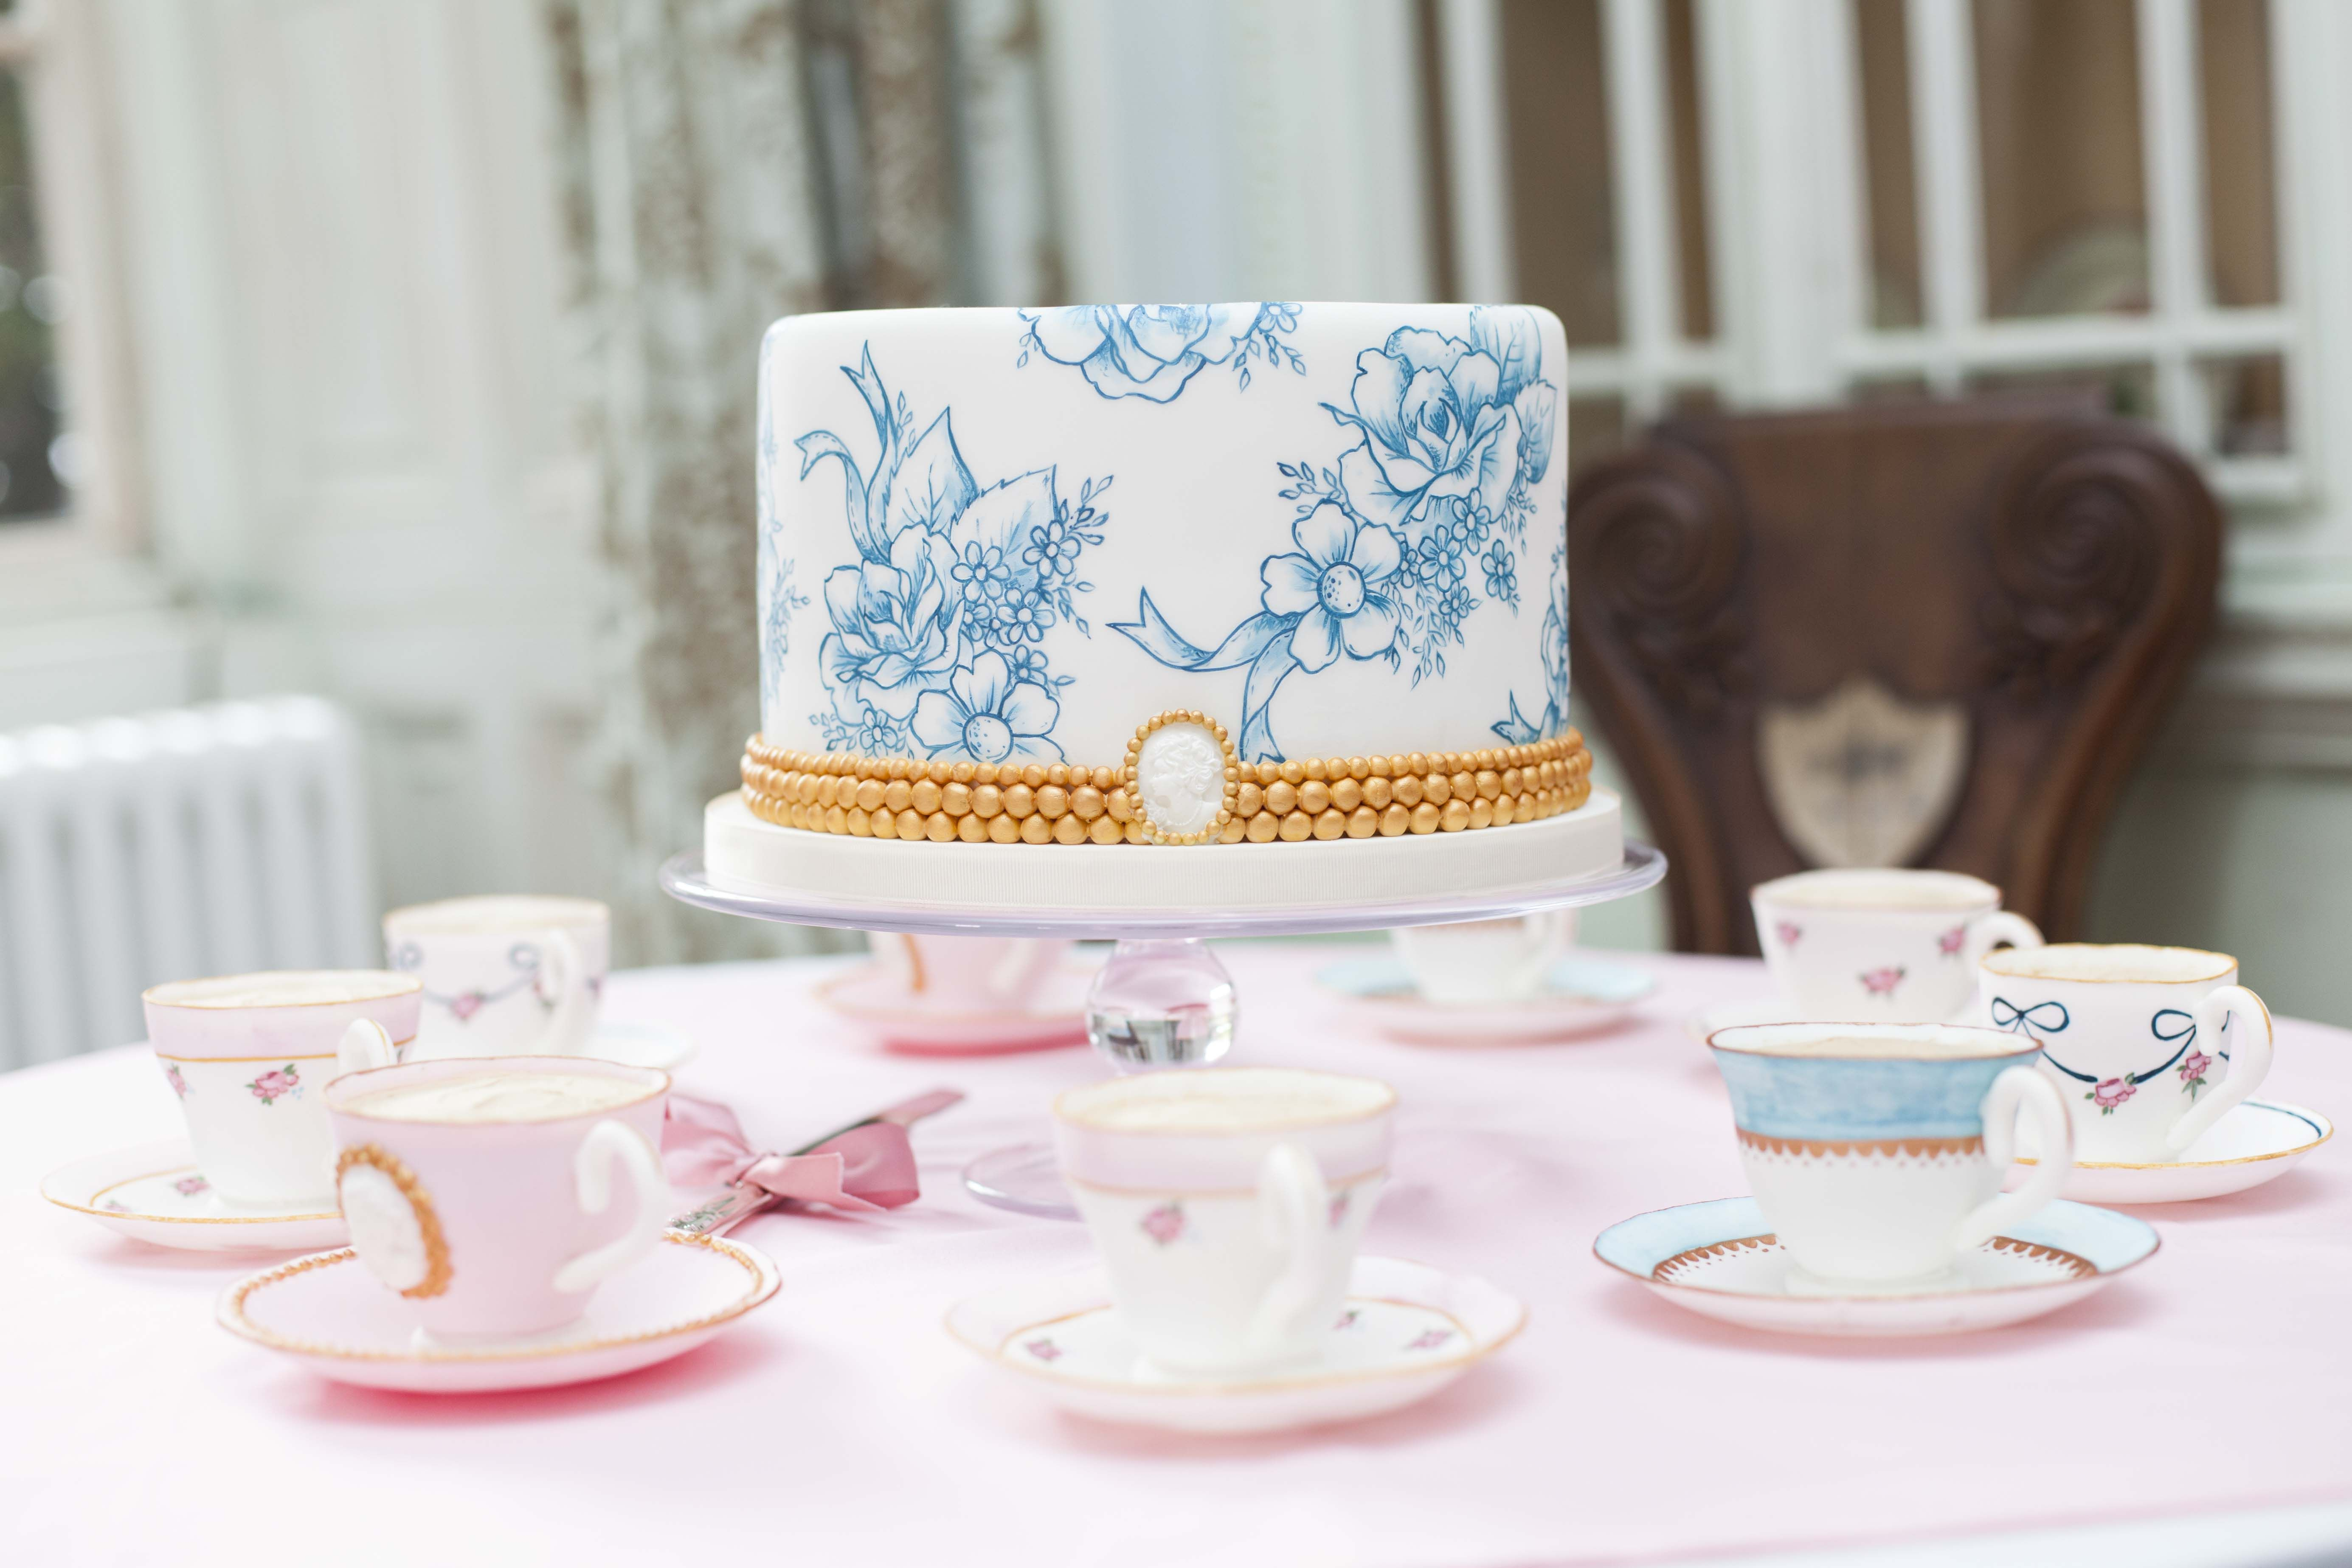 hand painted wedding cake. Toile du joiy wedding cake. blue and ...